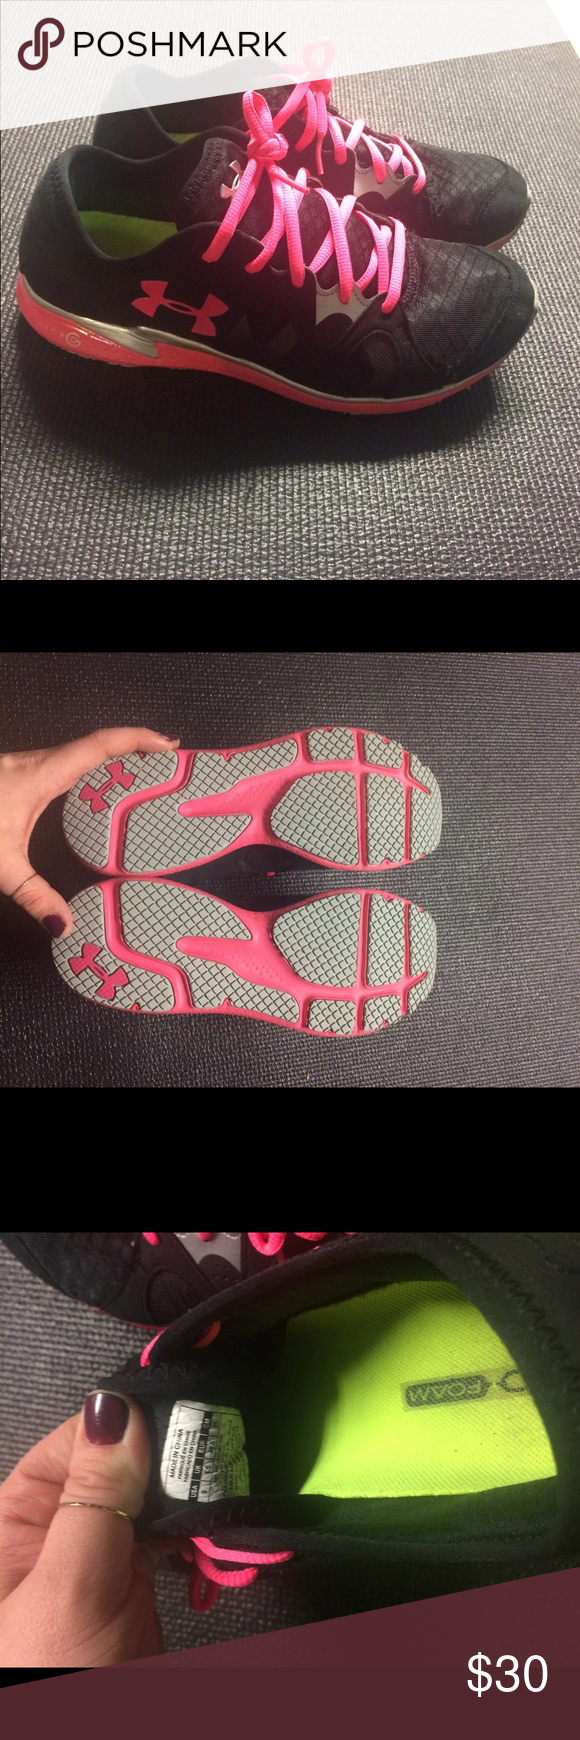 Selling this Underarmor women's sneaker pink /black. Size 9 on Poshmark! My username is: jkm5017. #shopmycloset #poshmark #fashion #shopping #style #forsale #Shoes